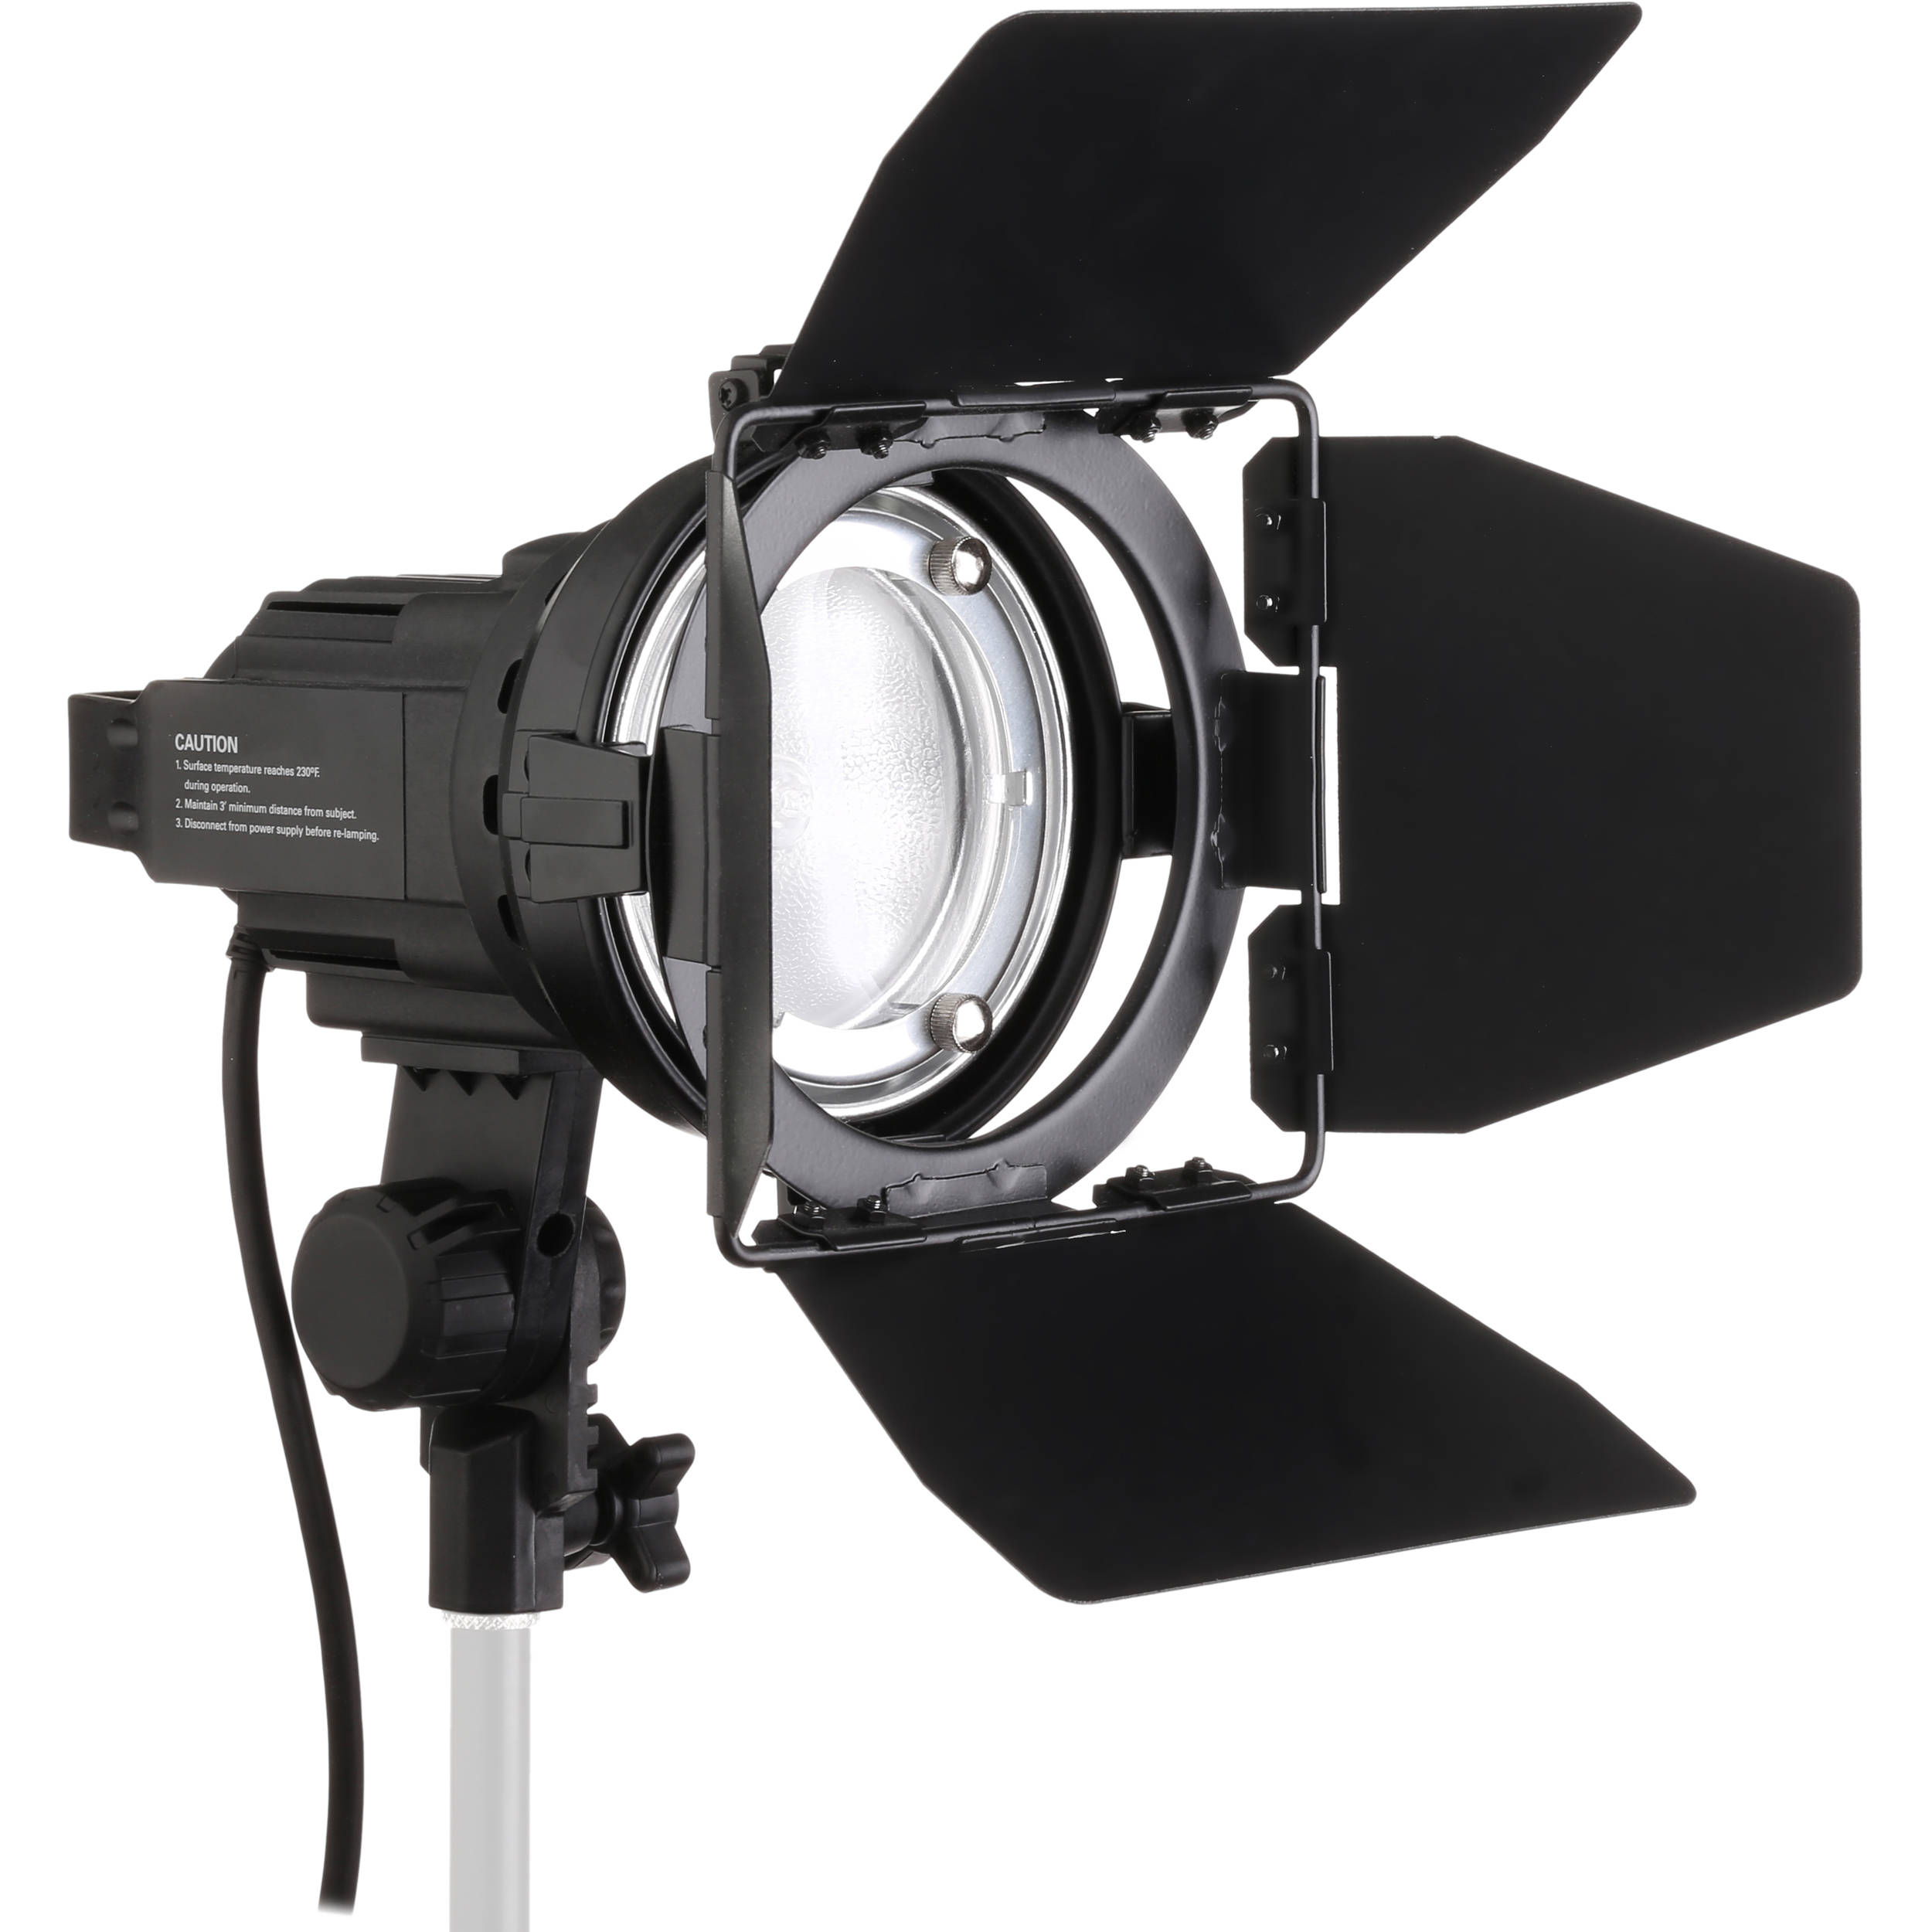 Impact Qualite 300 V 2012 Focusing Flood Light 300w120v